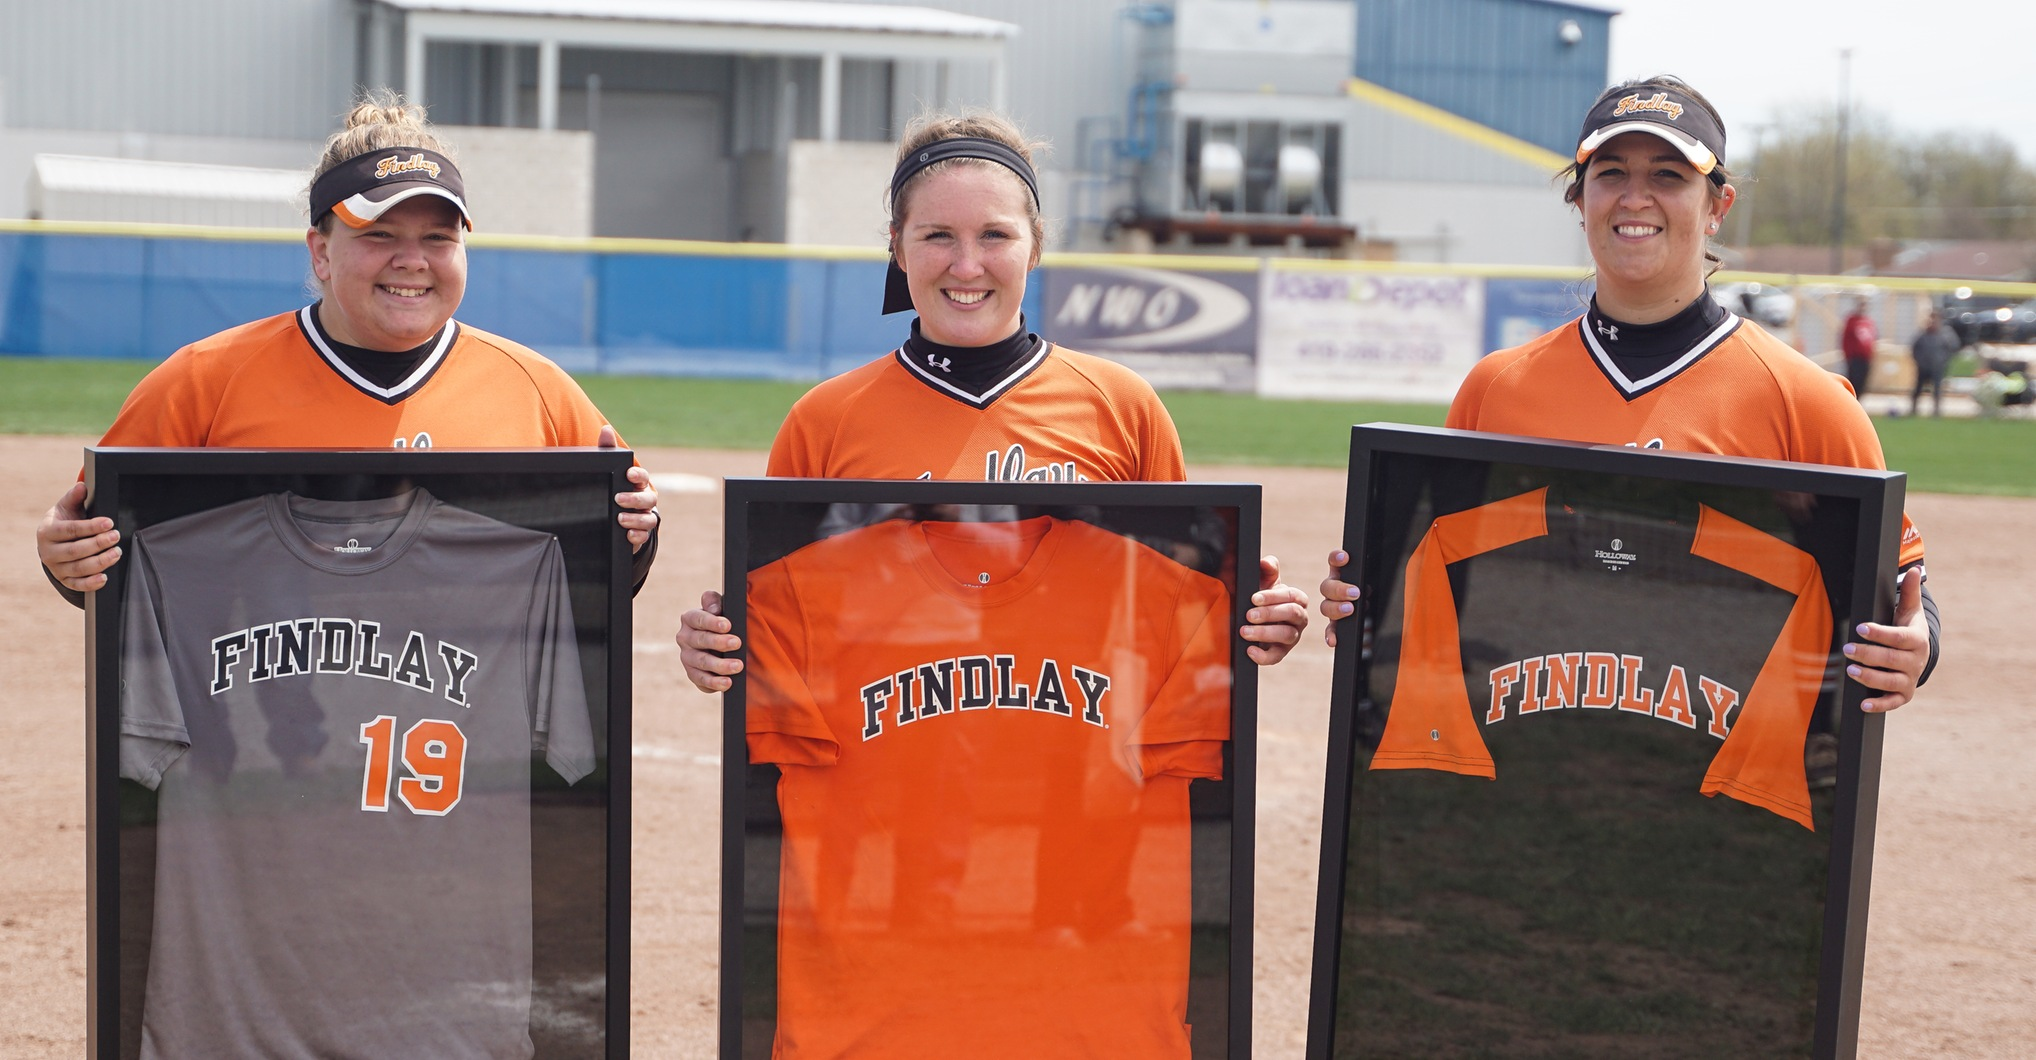 Salwa Al-Hajabed, Hailey Bryan, and Amanda DelMonte pose with their jerseys on Senior Day